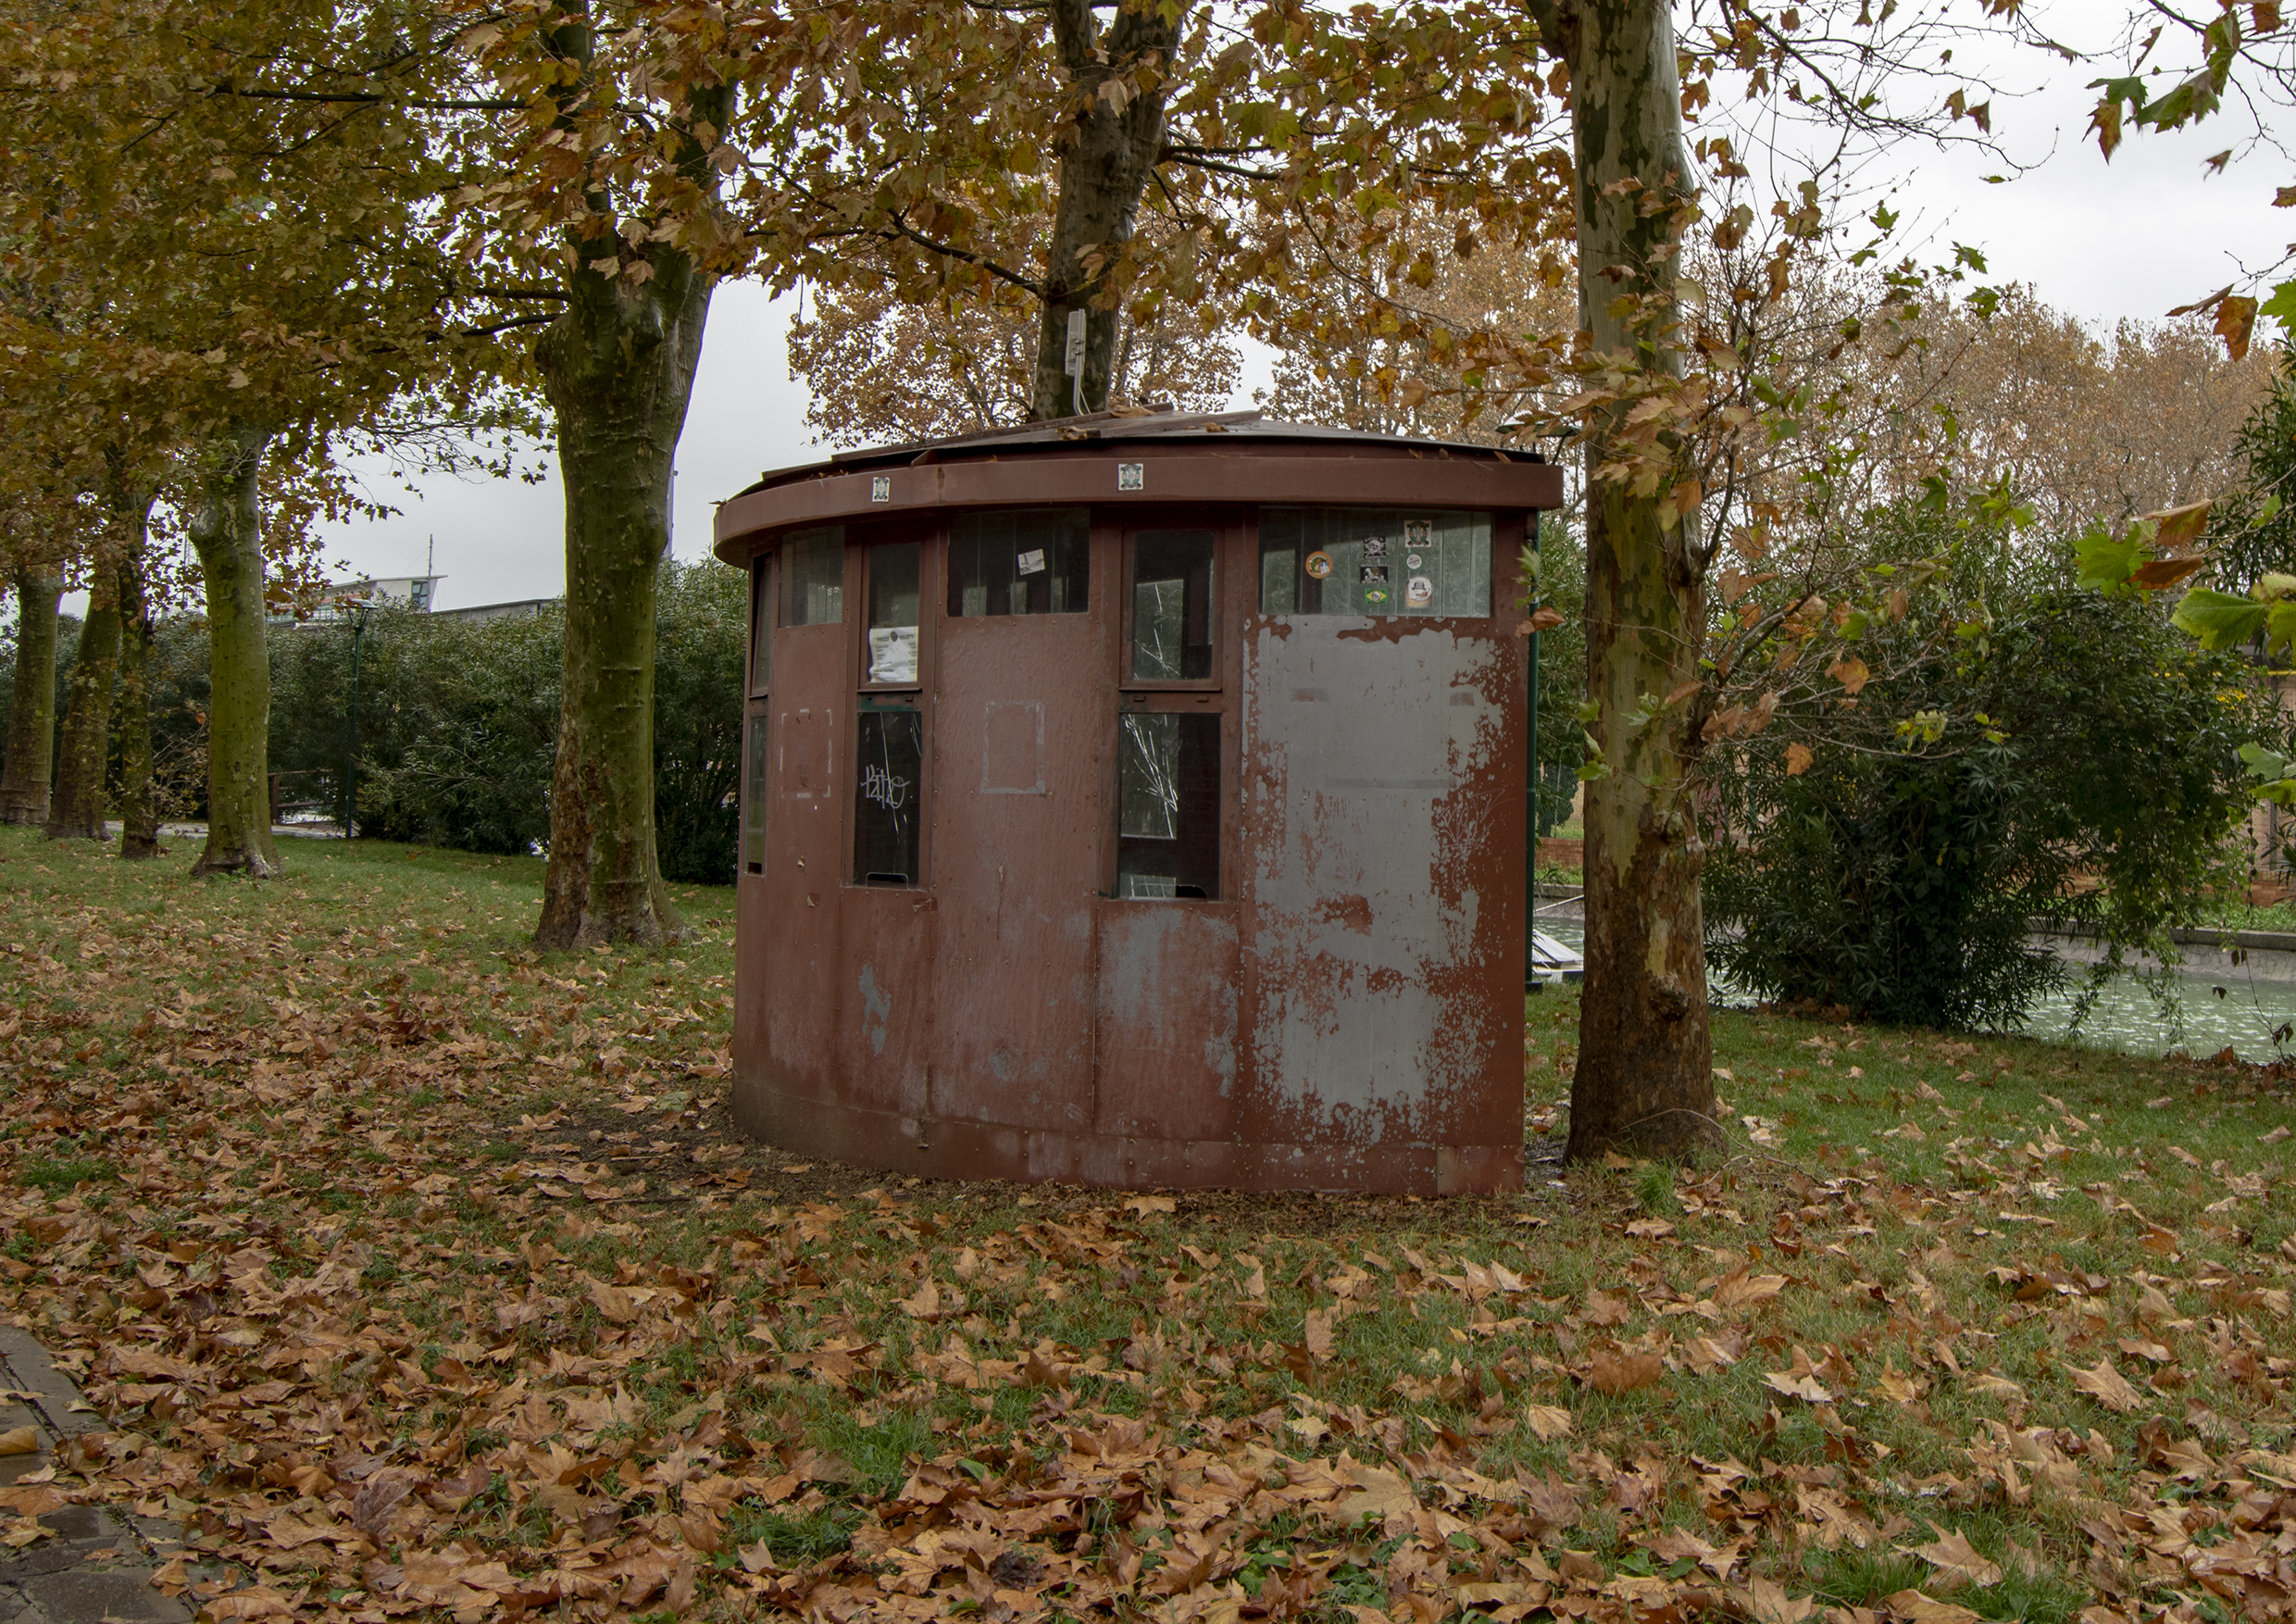 The Ticket Booth.